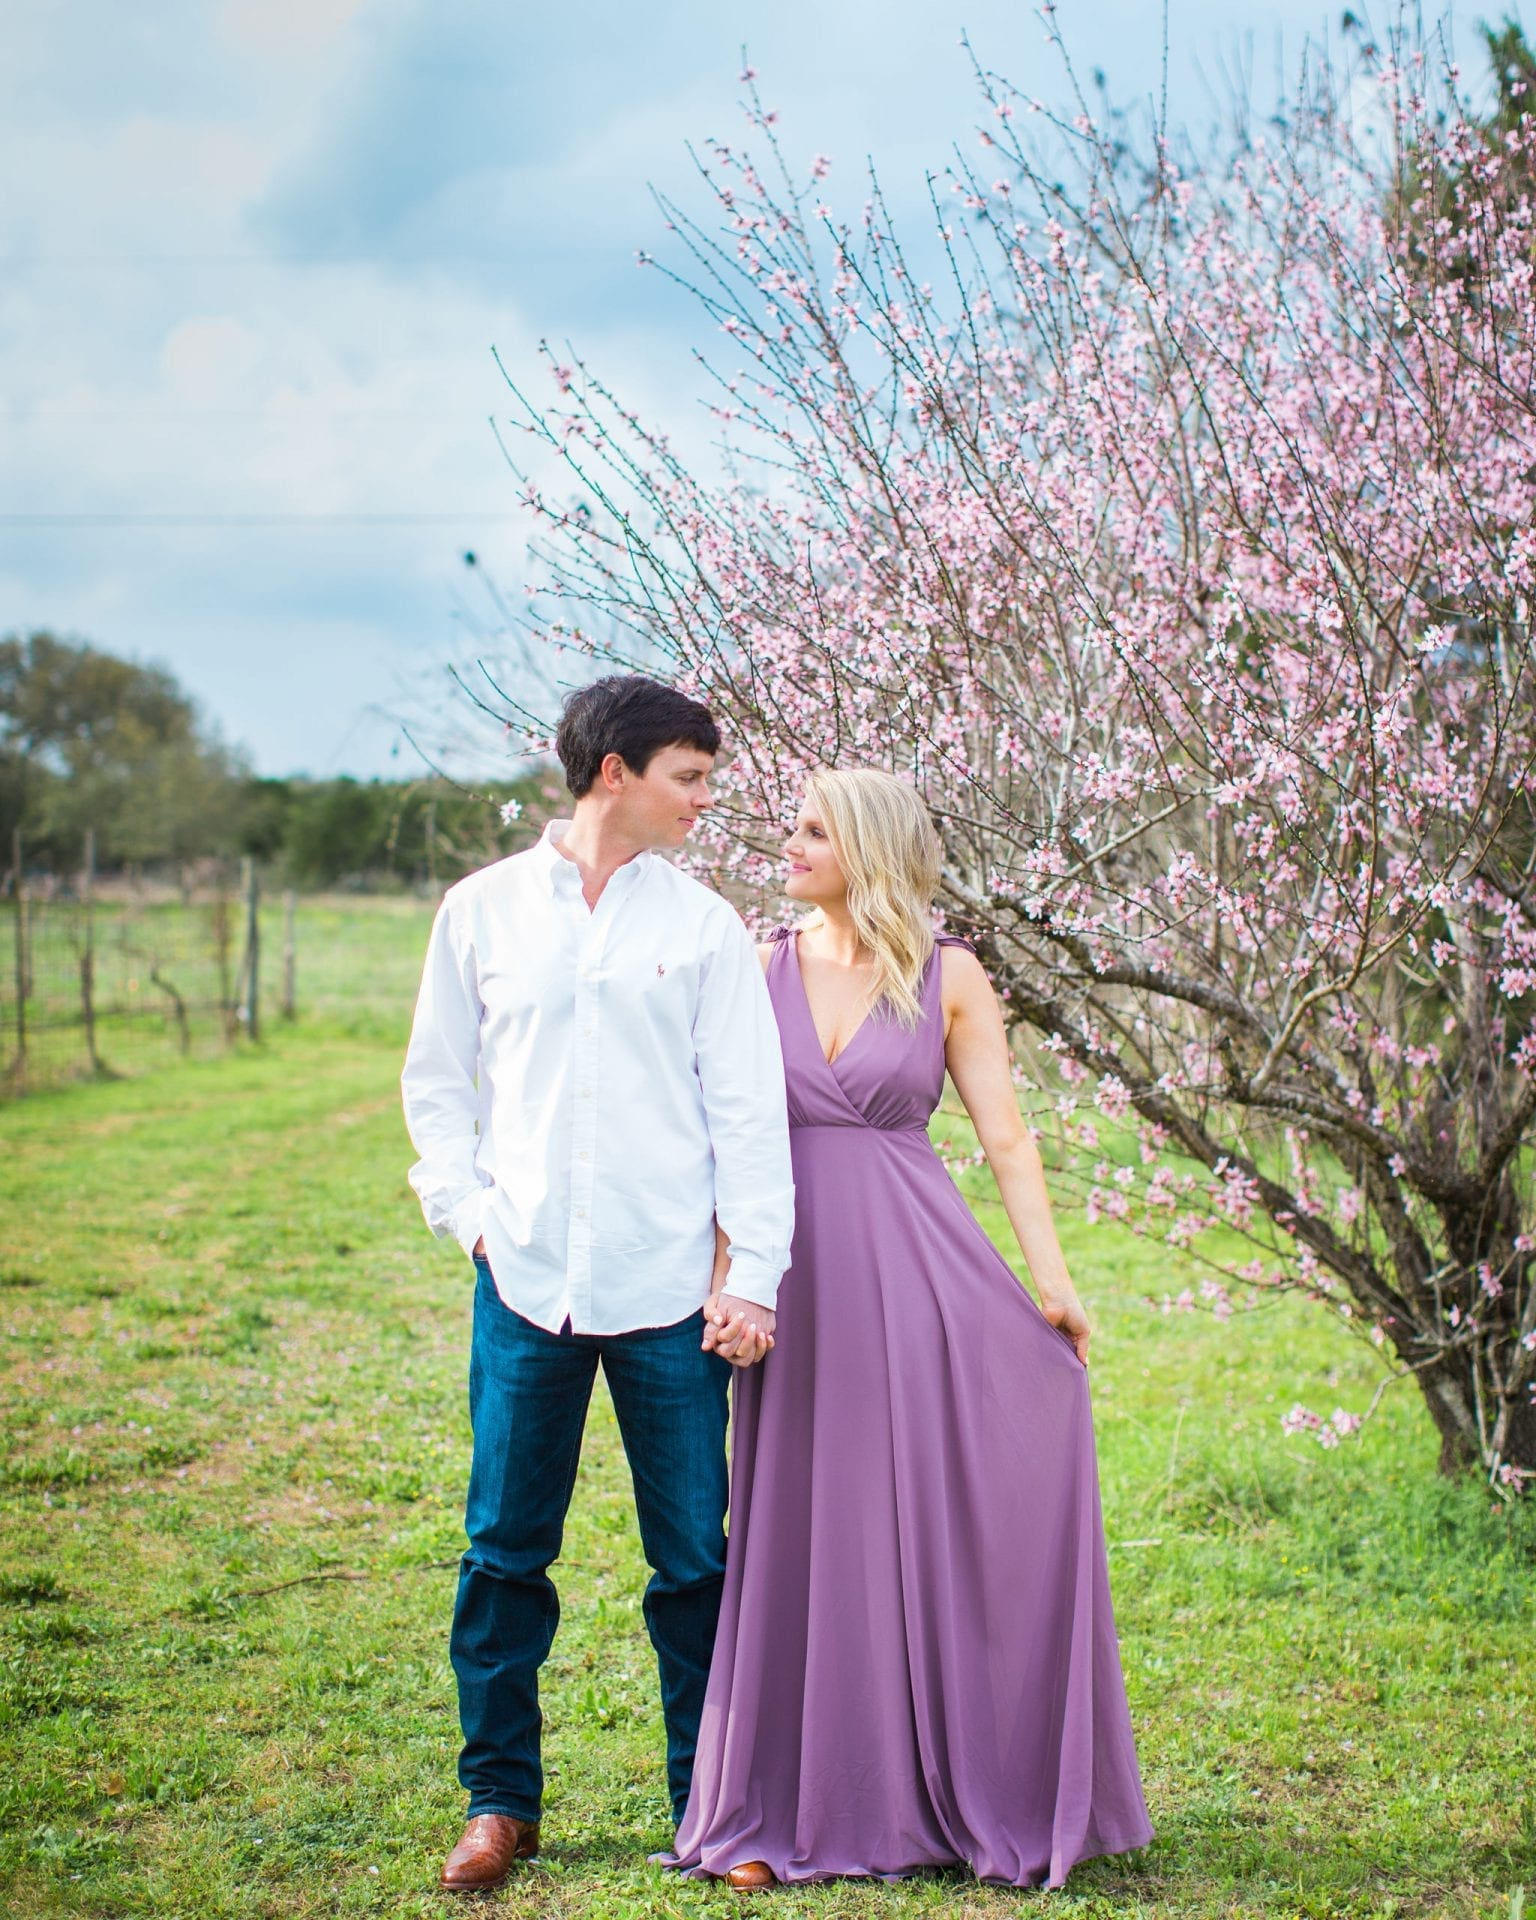 Michele Engagement session at Oak Valley Vineyards in front of pink flowers